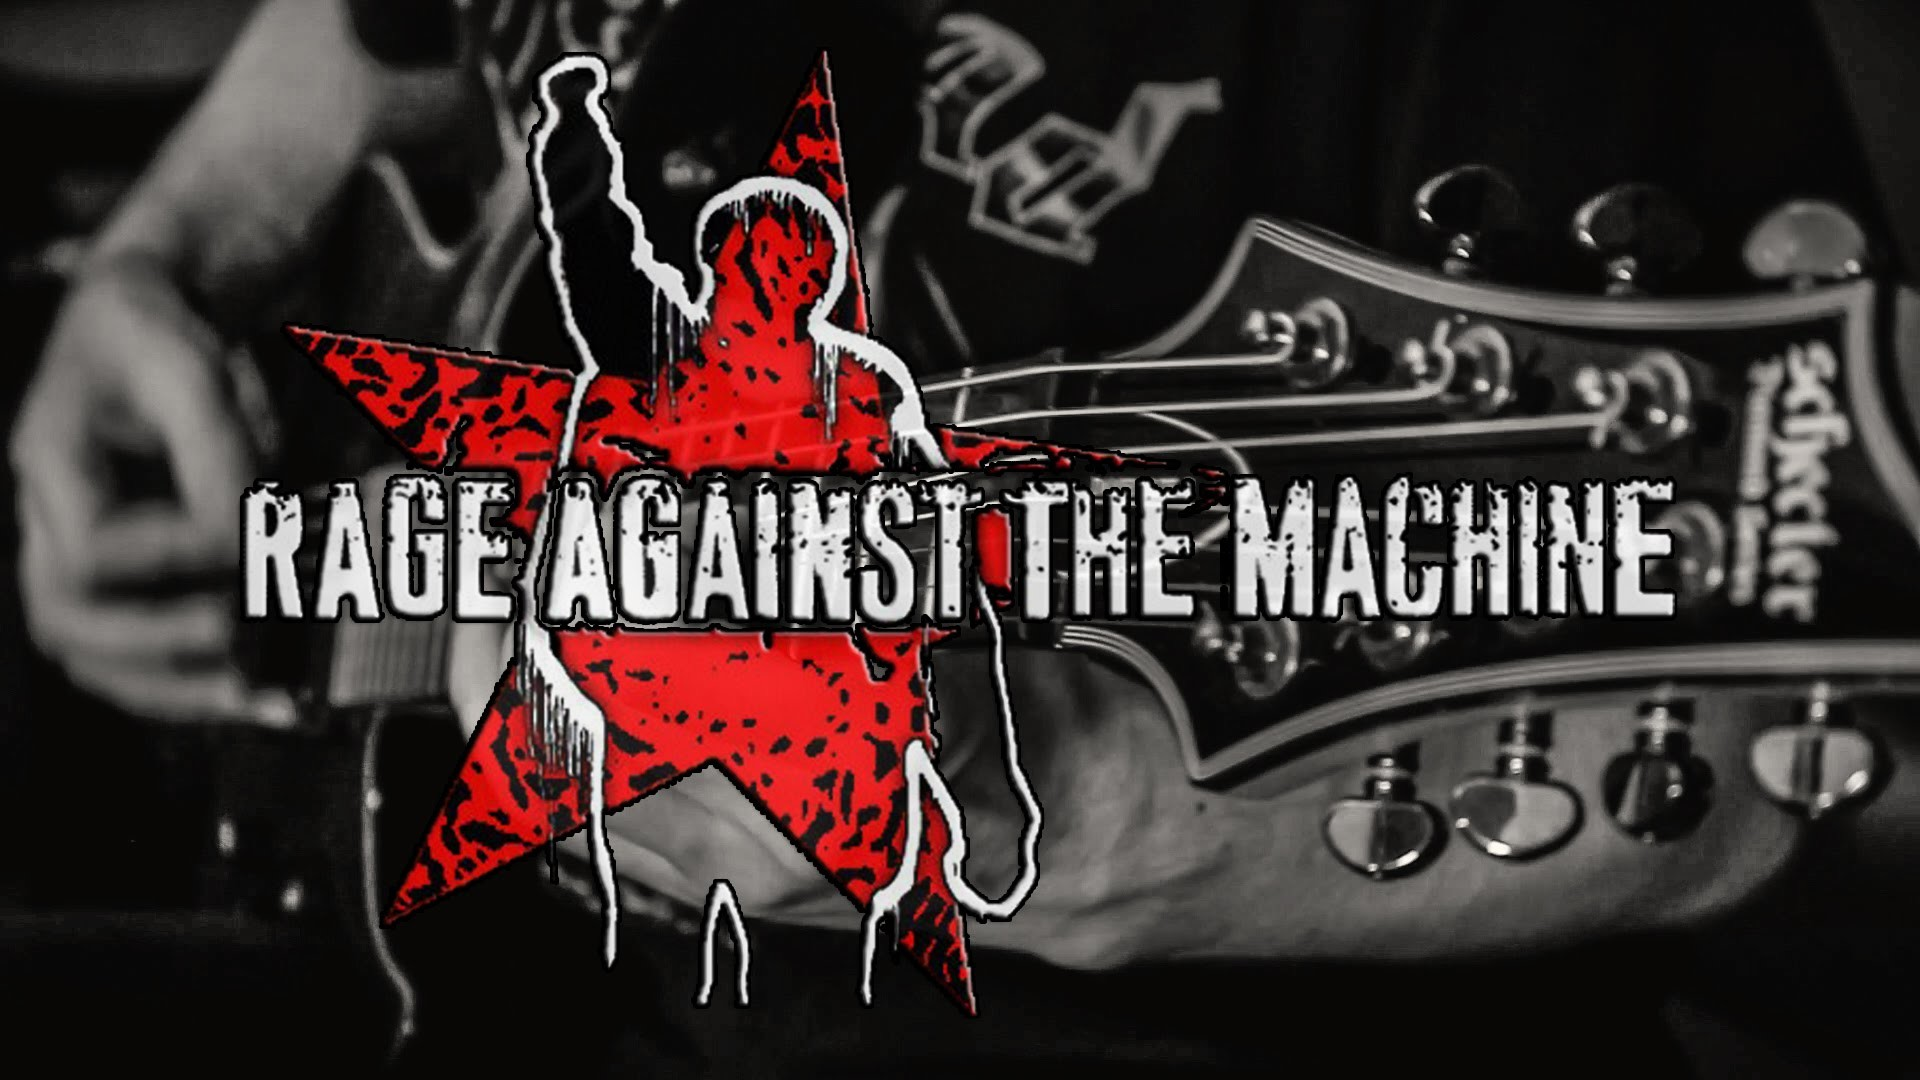 Res: 1920x1080, Rage Against The Machine Wallpapers 15 - 1920 X 1080